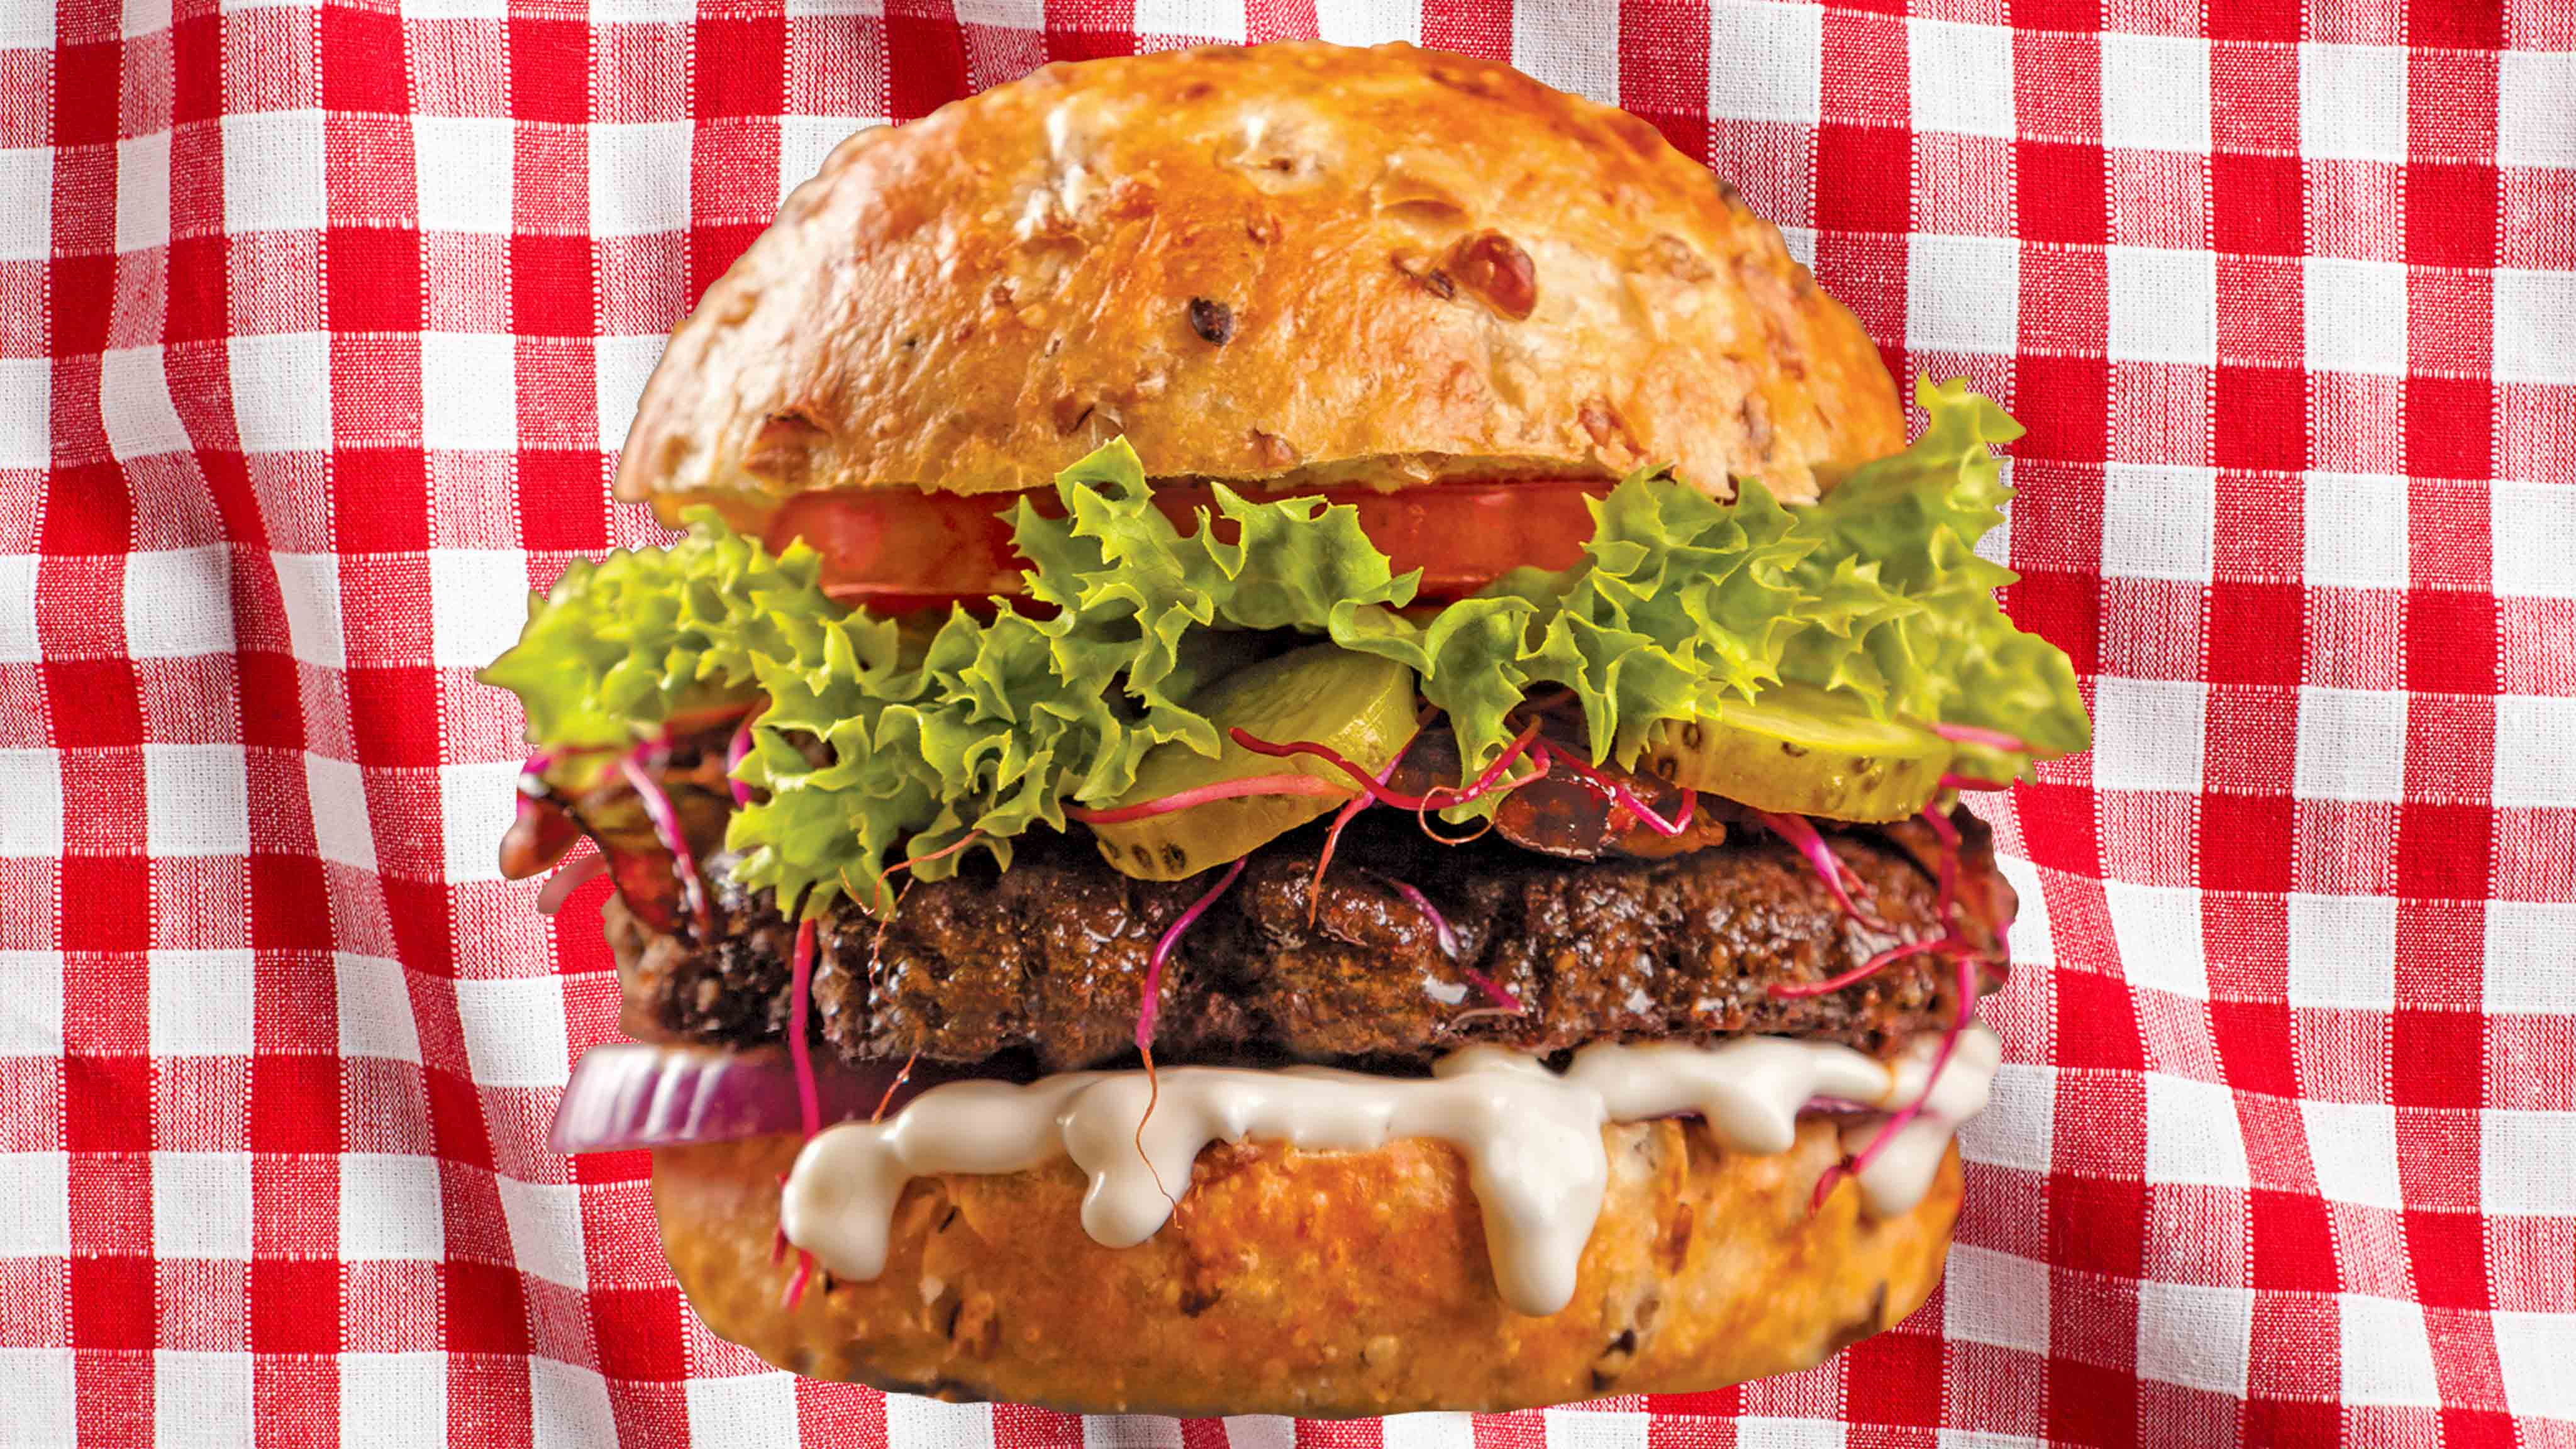 Image for Recipe Bacon and Brie Burger on Onion Roll